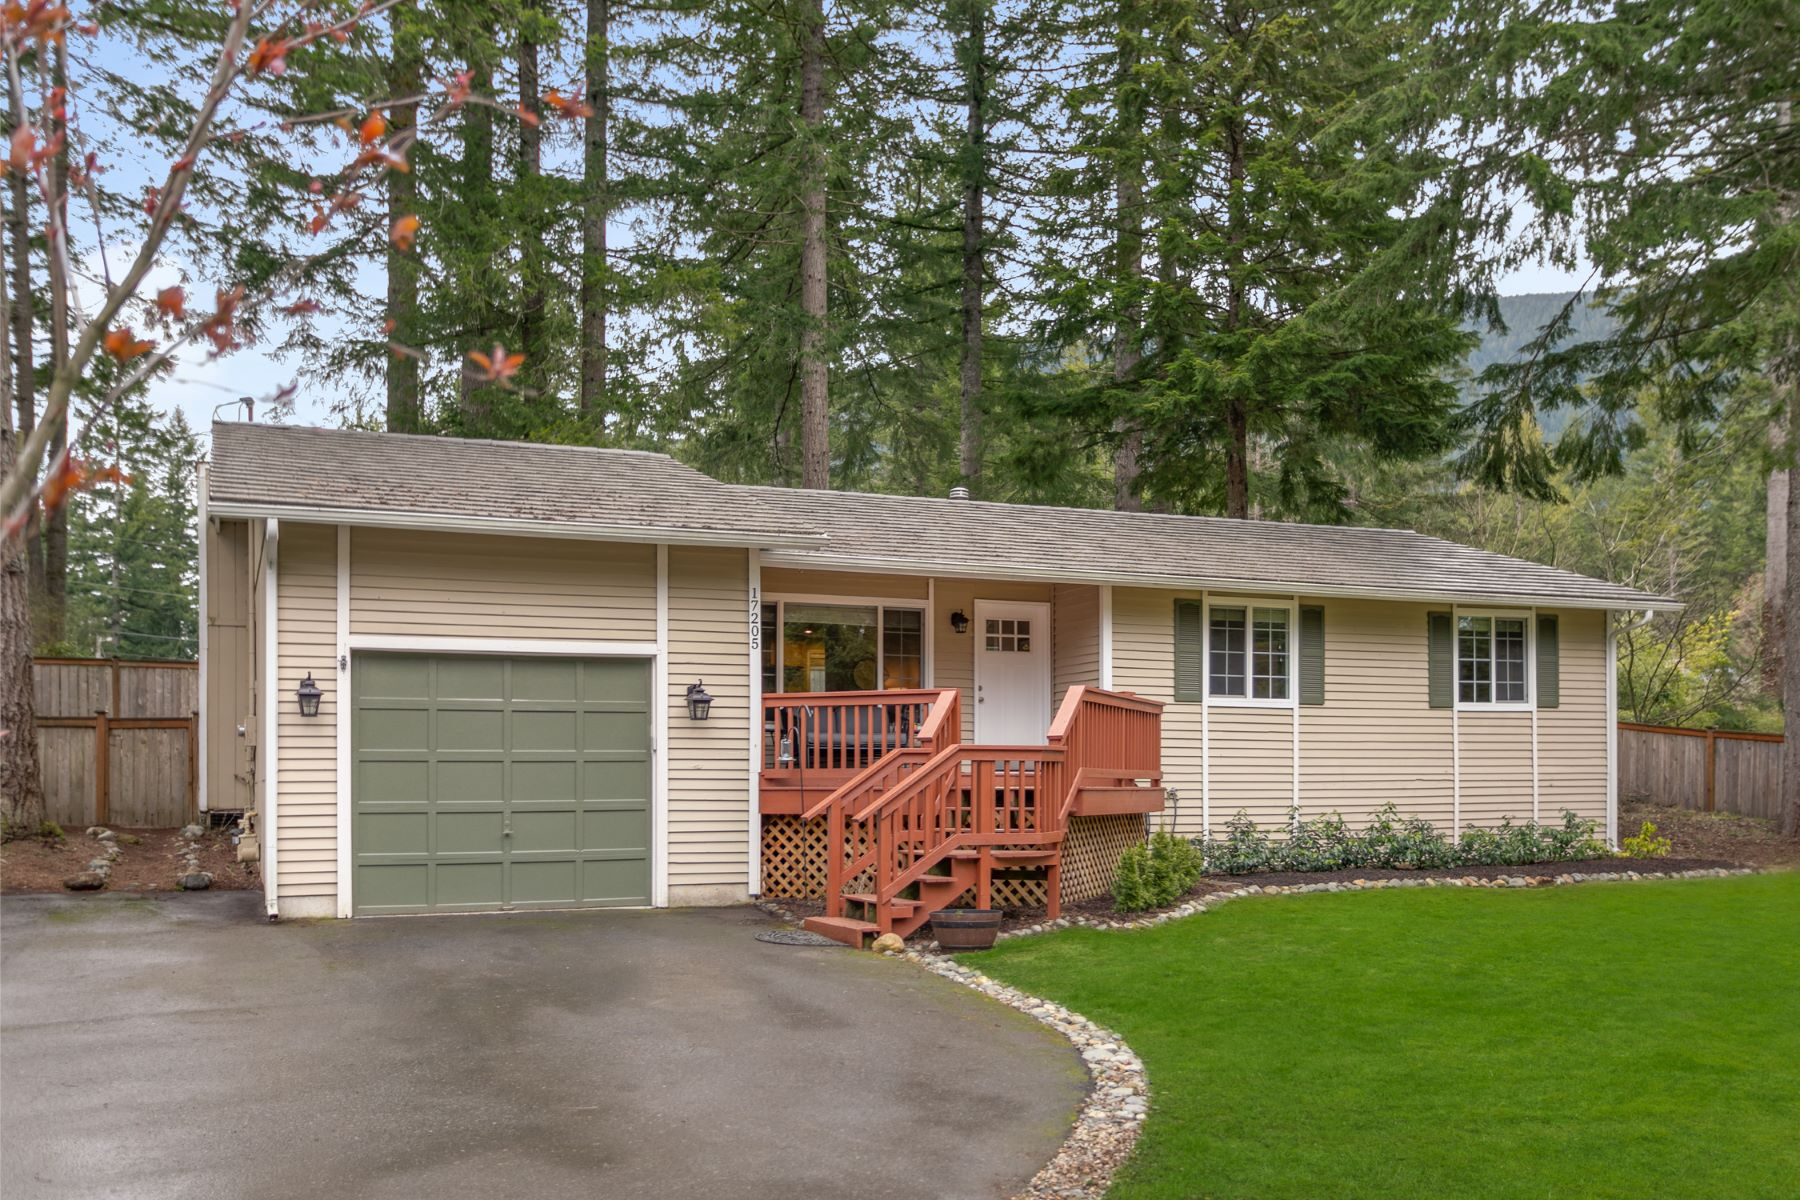 Single Family Homes for Sale at Wilderness Rim Living 17205 432nd Ave SE North Bend, Washington 98045 United States